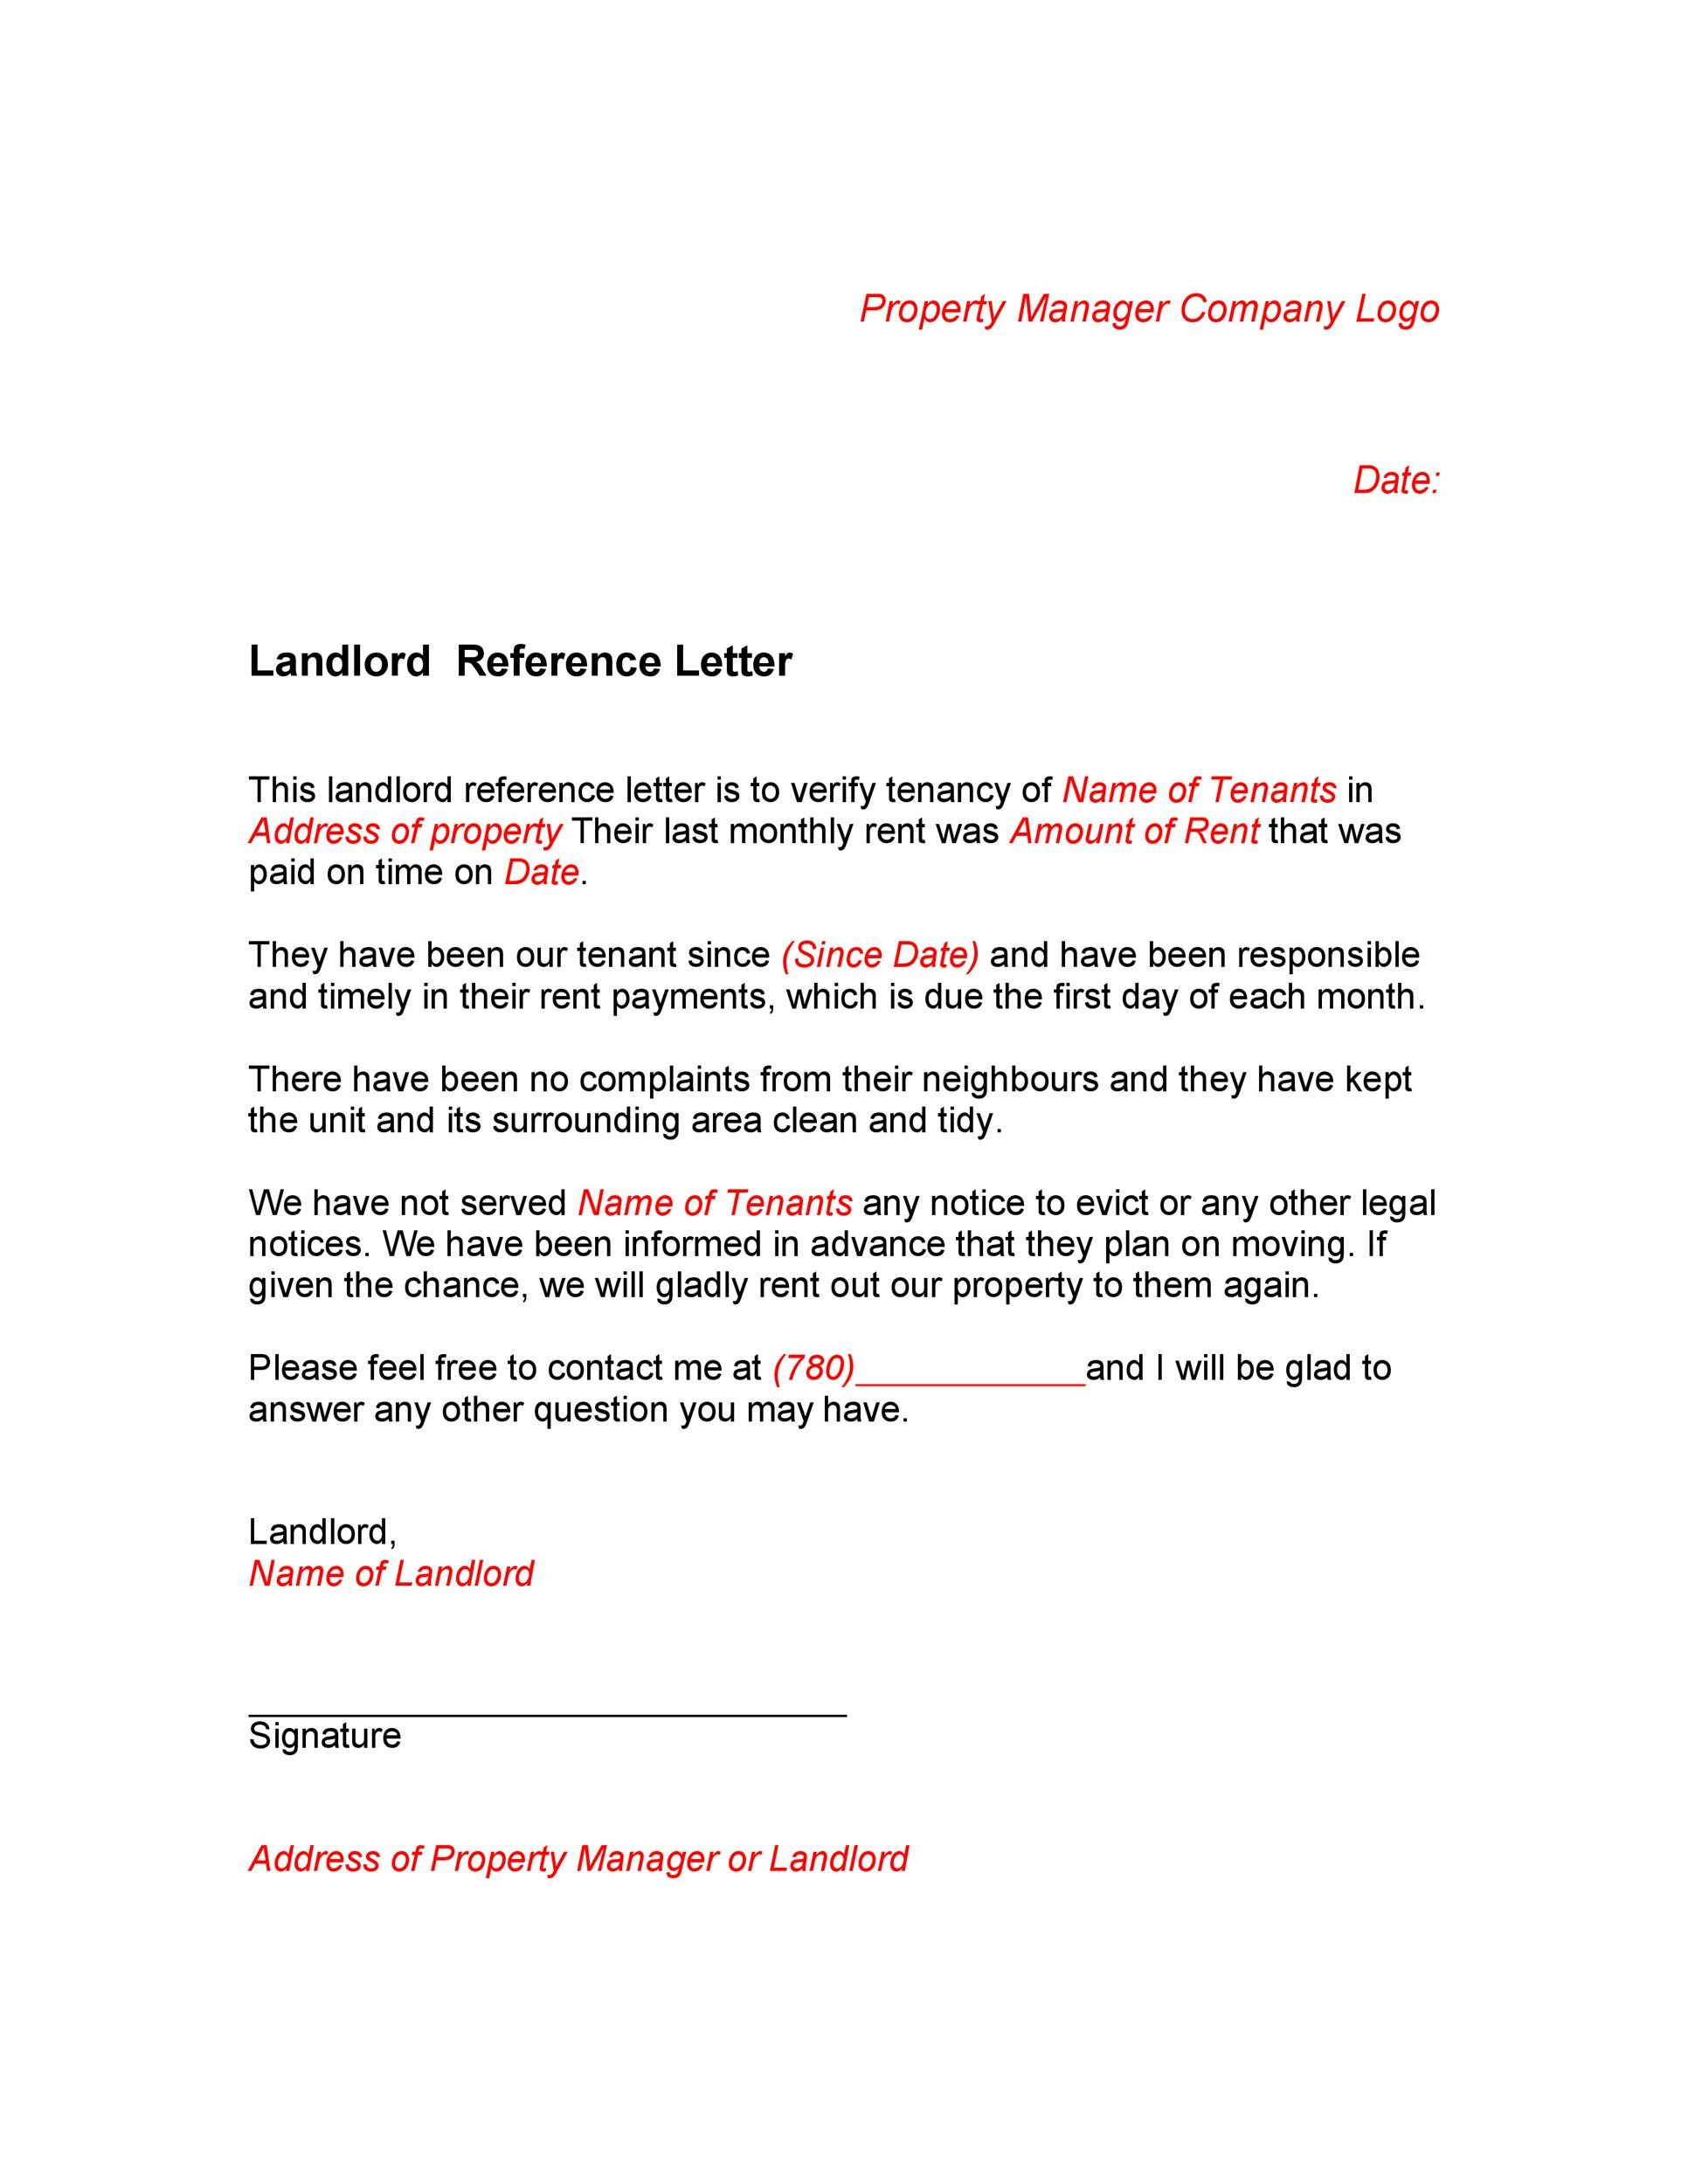 40 landlord reference letters form samples template lab for Referance letter template